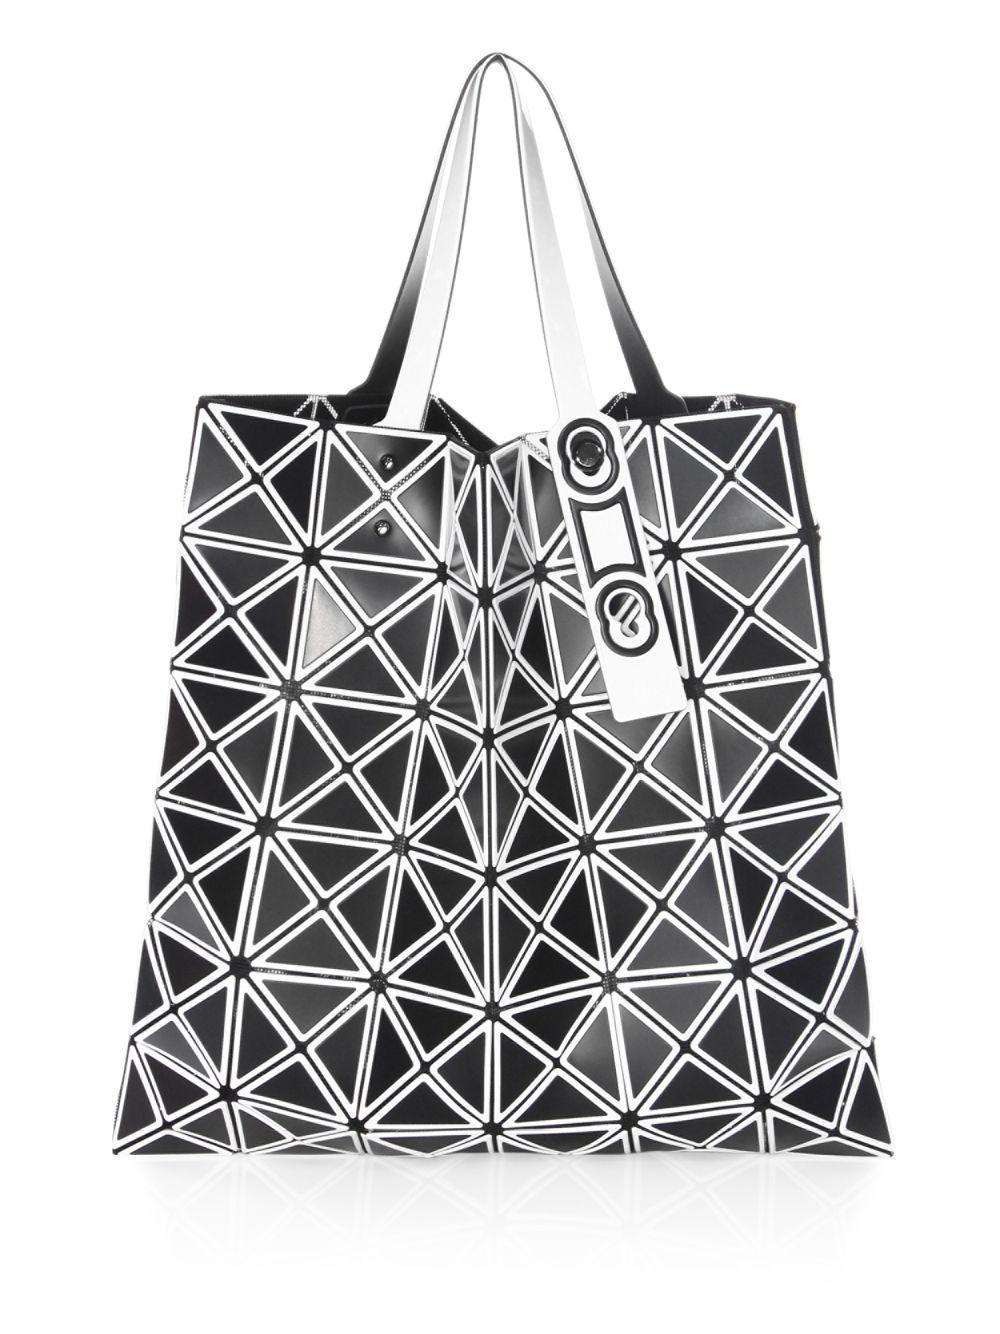 7c5ef5a9d83c Lyst - Bao Bao Issey Miyake Lucent Inlaid Tote in Black - Save 40%